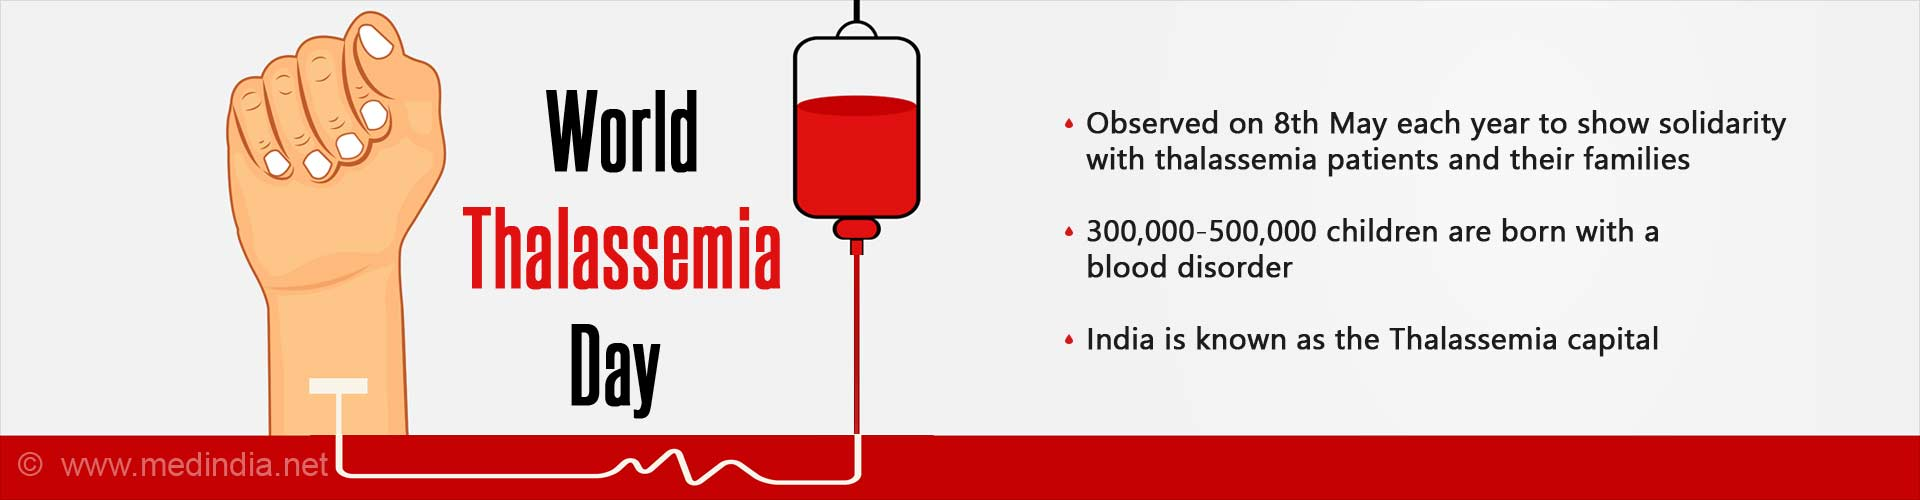 World Thalassemia Day 2018